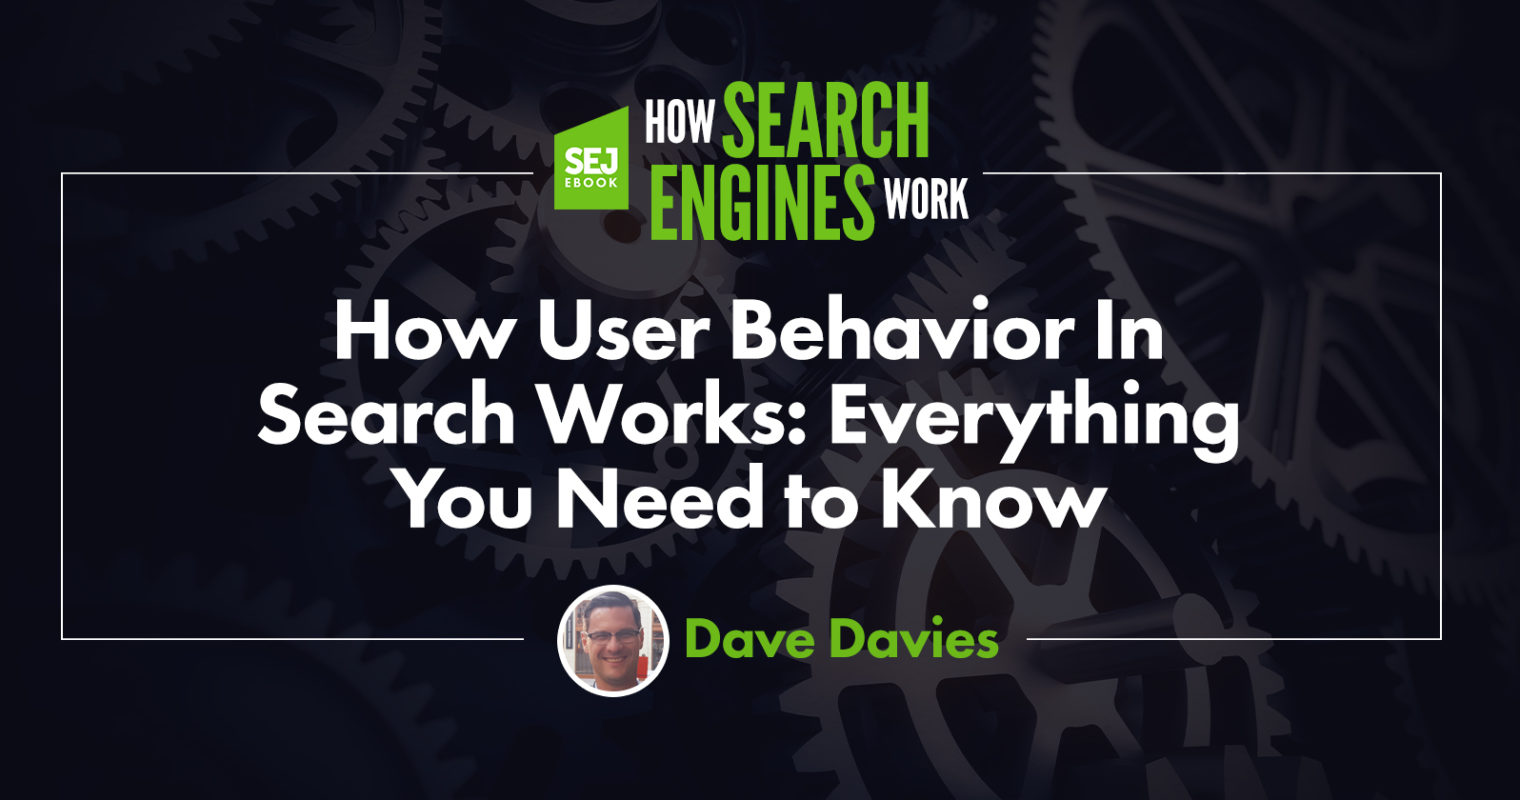 How User Behavior In Search Works: Everything You Need to Know